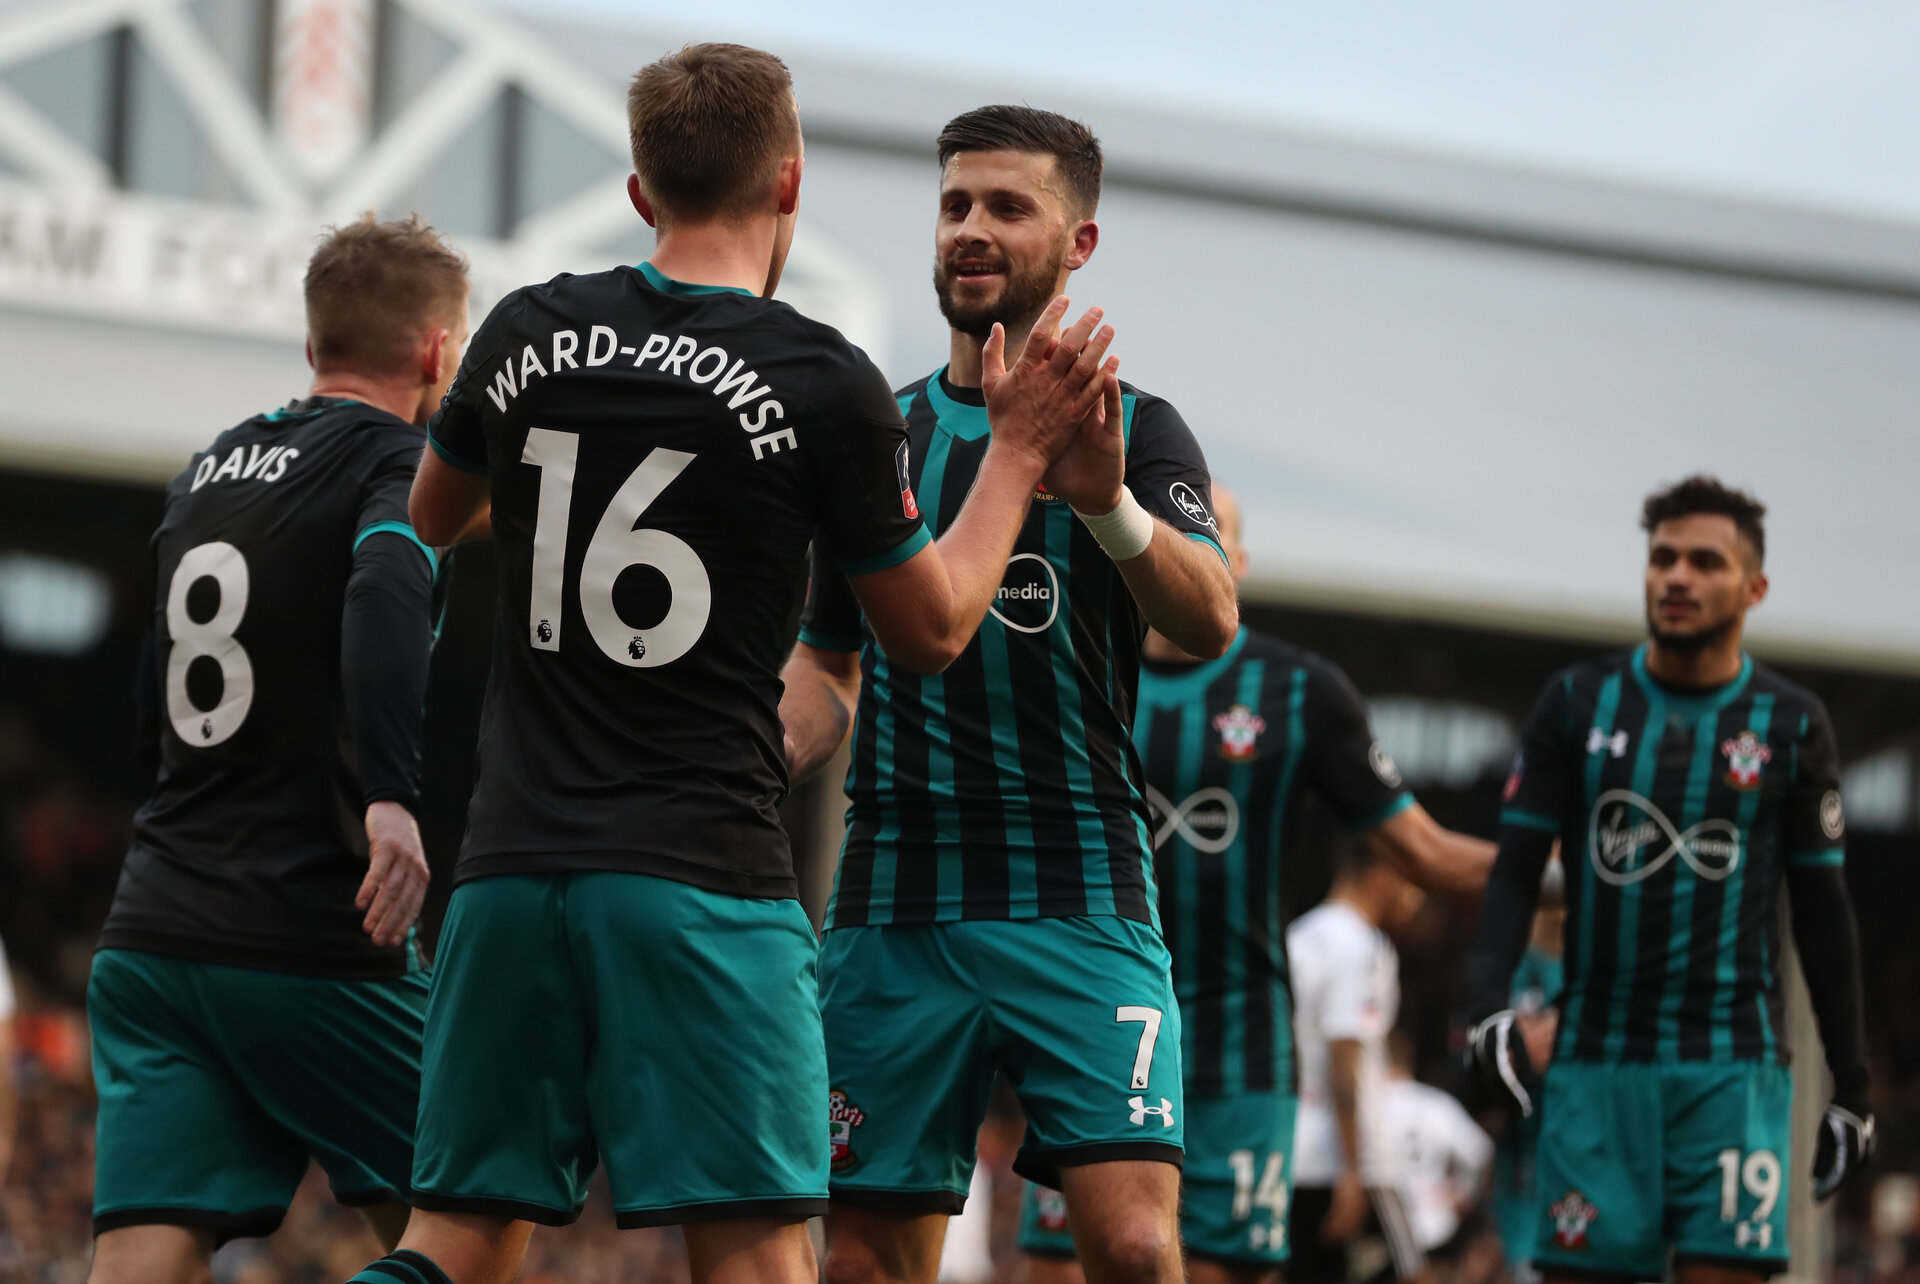 LONDON, ENGLAND - JANUARY 06: Southampton's James Ward-Prowse celebrates with Shane Long(R) after putting his side 1-0 up during the Emirates FA Cup third round match between Fulham FC and Southampton FC at Craven Cottage on January 6, 2018 in London, England. (Photo by Matt Watson/Southampton FC via Getty Images)